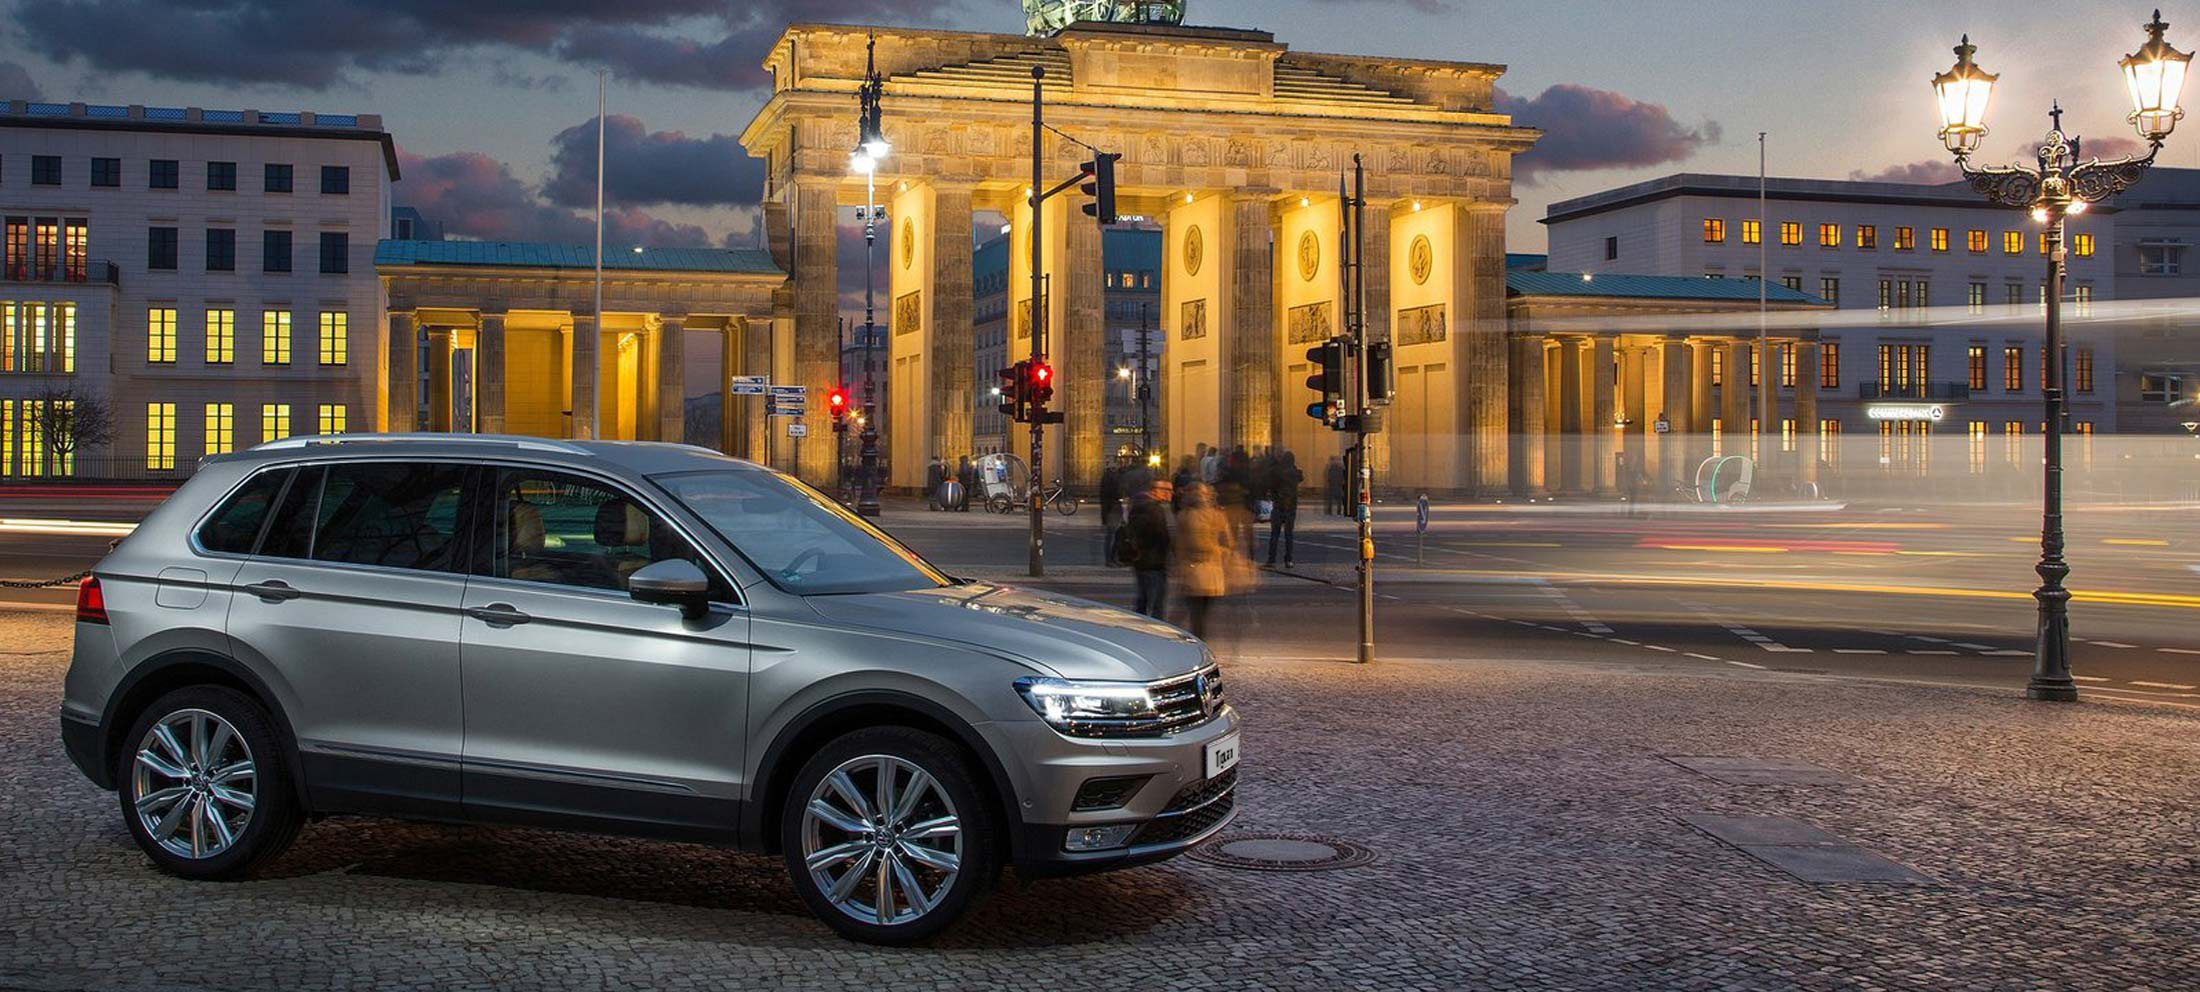 Tiguan Offer Slider 2